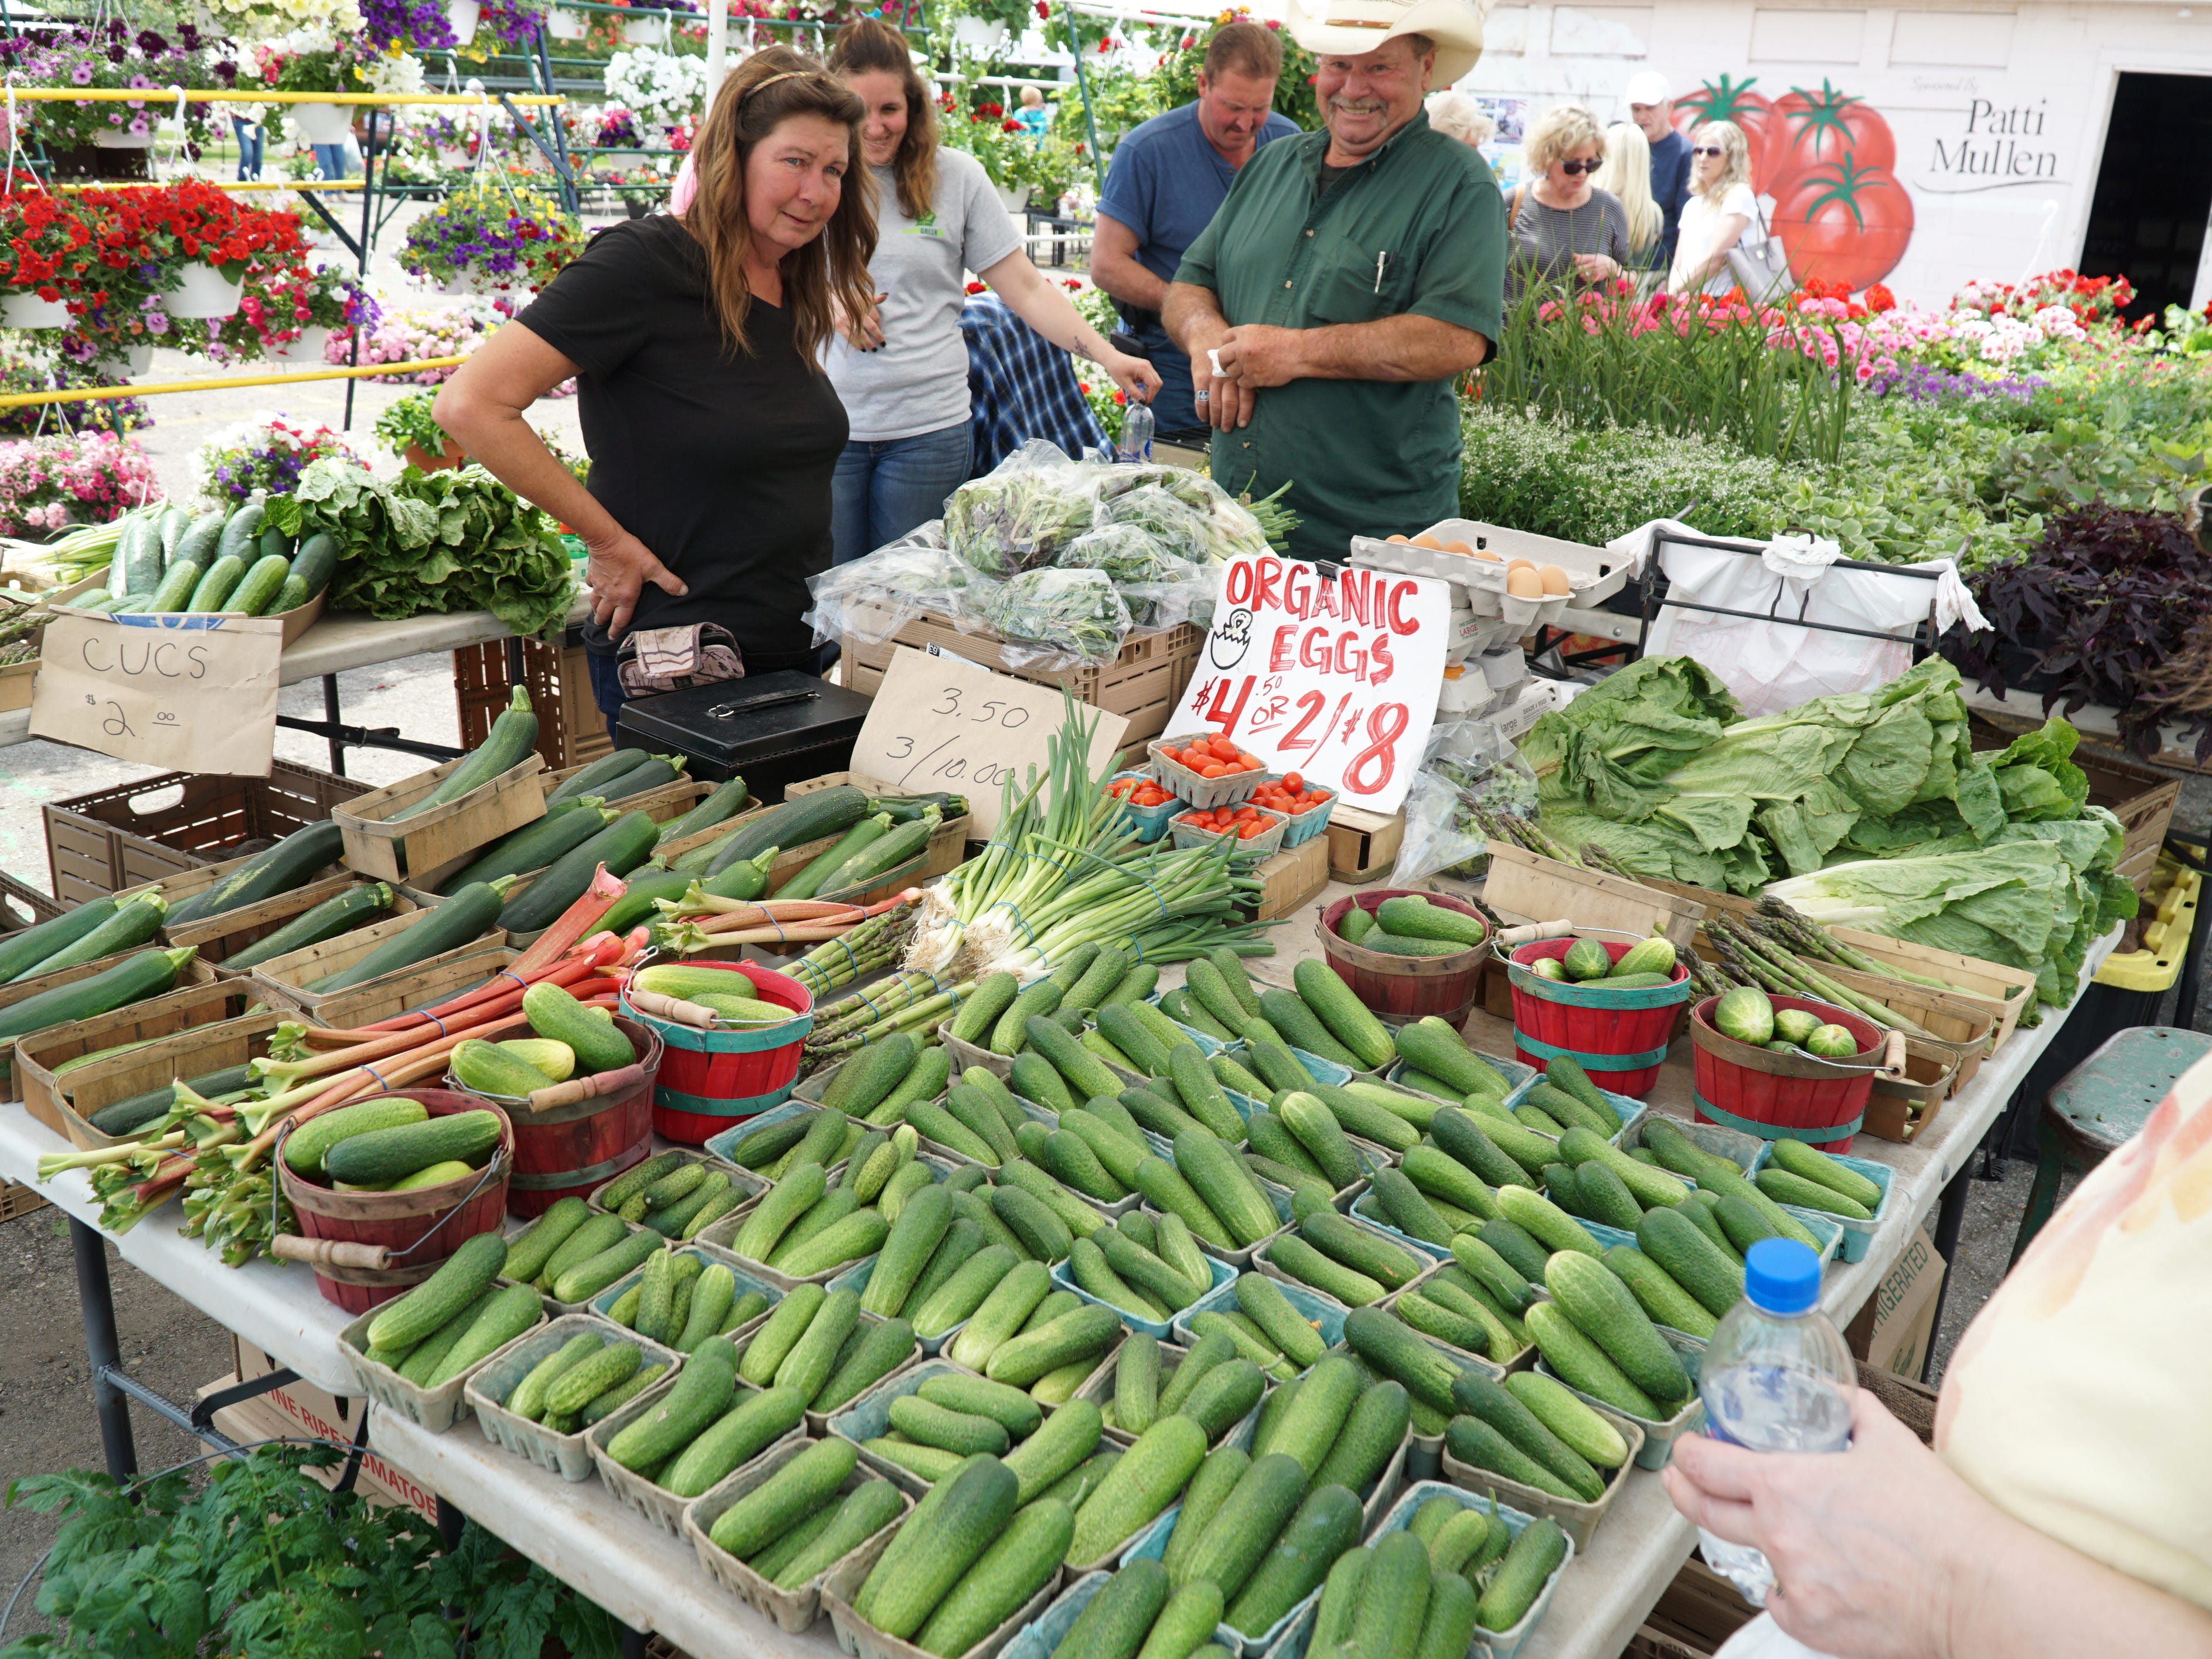 One vendor at the May 16 market was already selling some greenhouse-grown vegetables including zucchini, cucumbers, rhubarb and green onions.